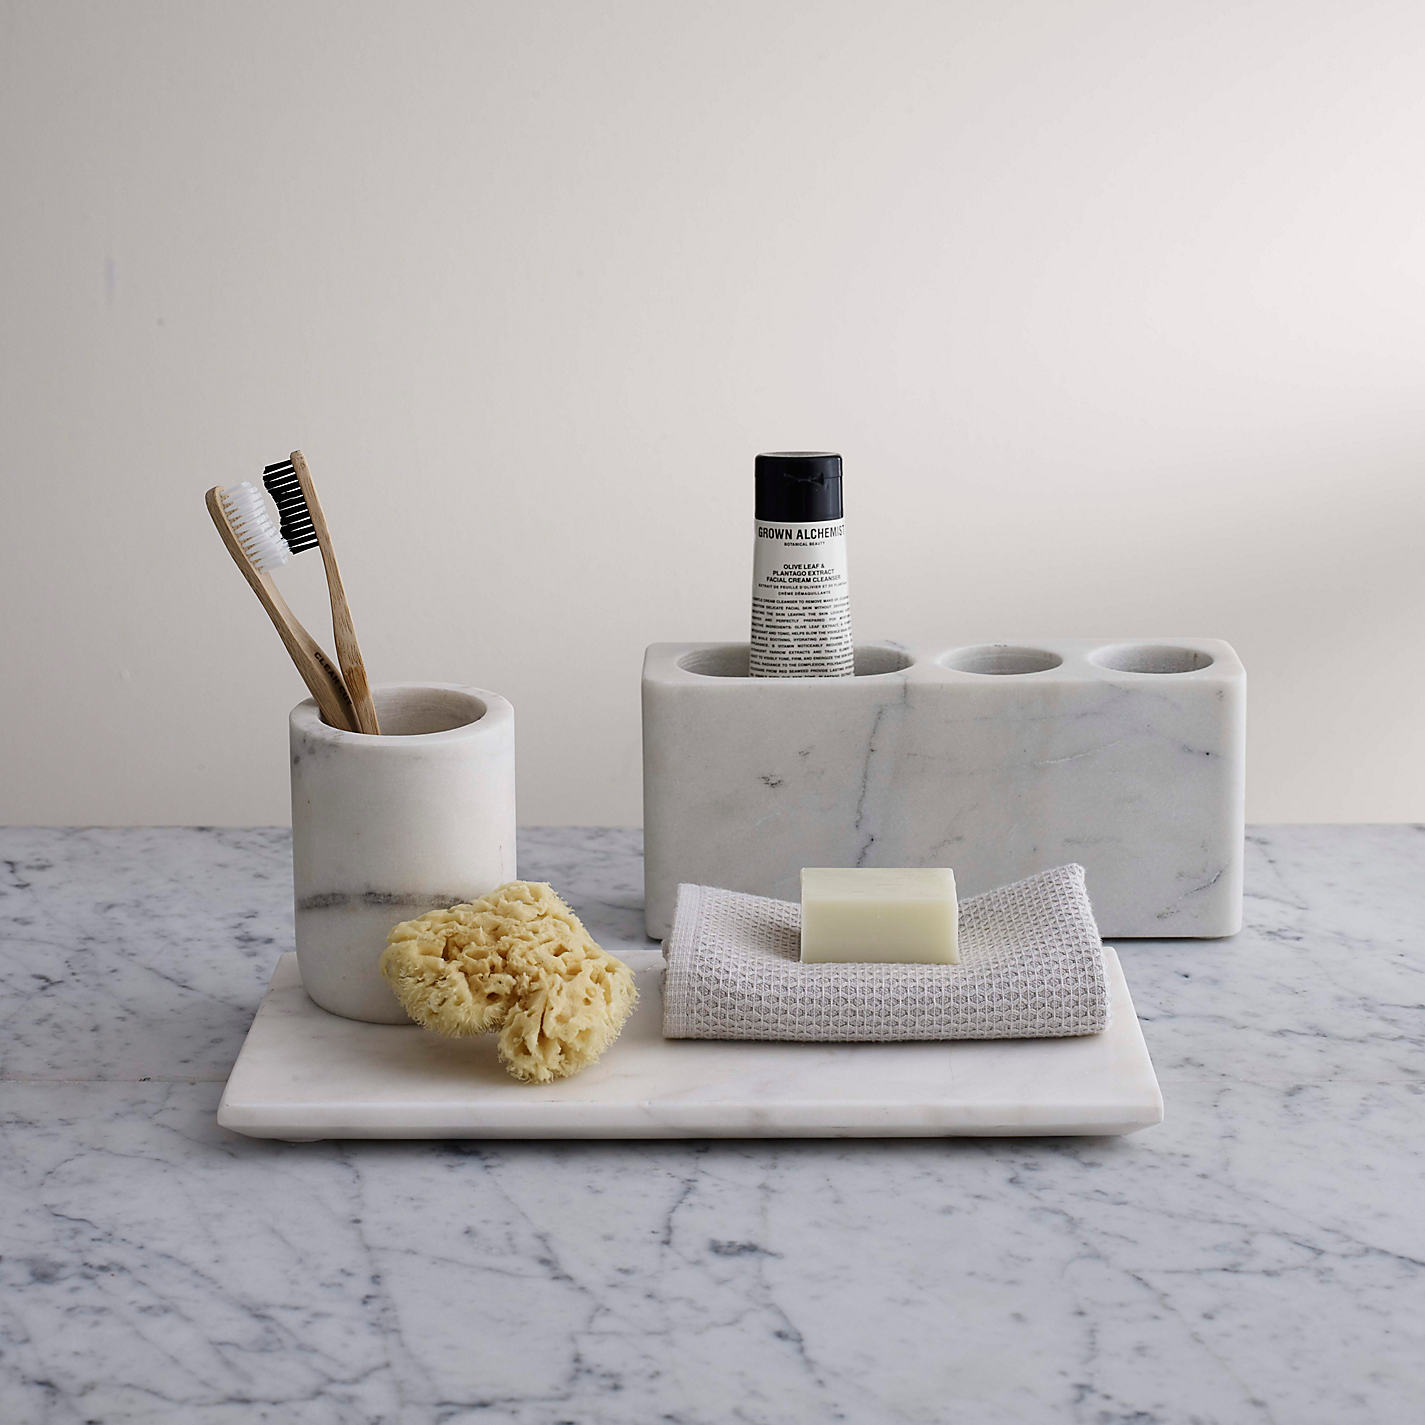 Buy John Lewis White Marble Bathroom Accessories Tray Online at  johnlewis com. Buy John Lewis White Marble Bathroom Accessories Tray   John Lewis